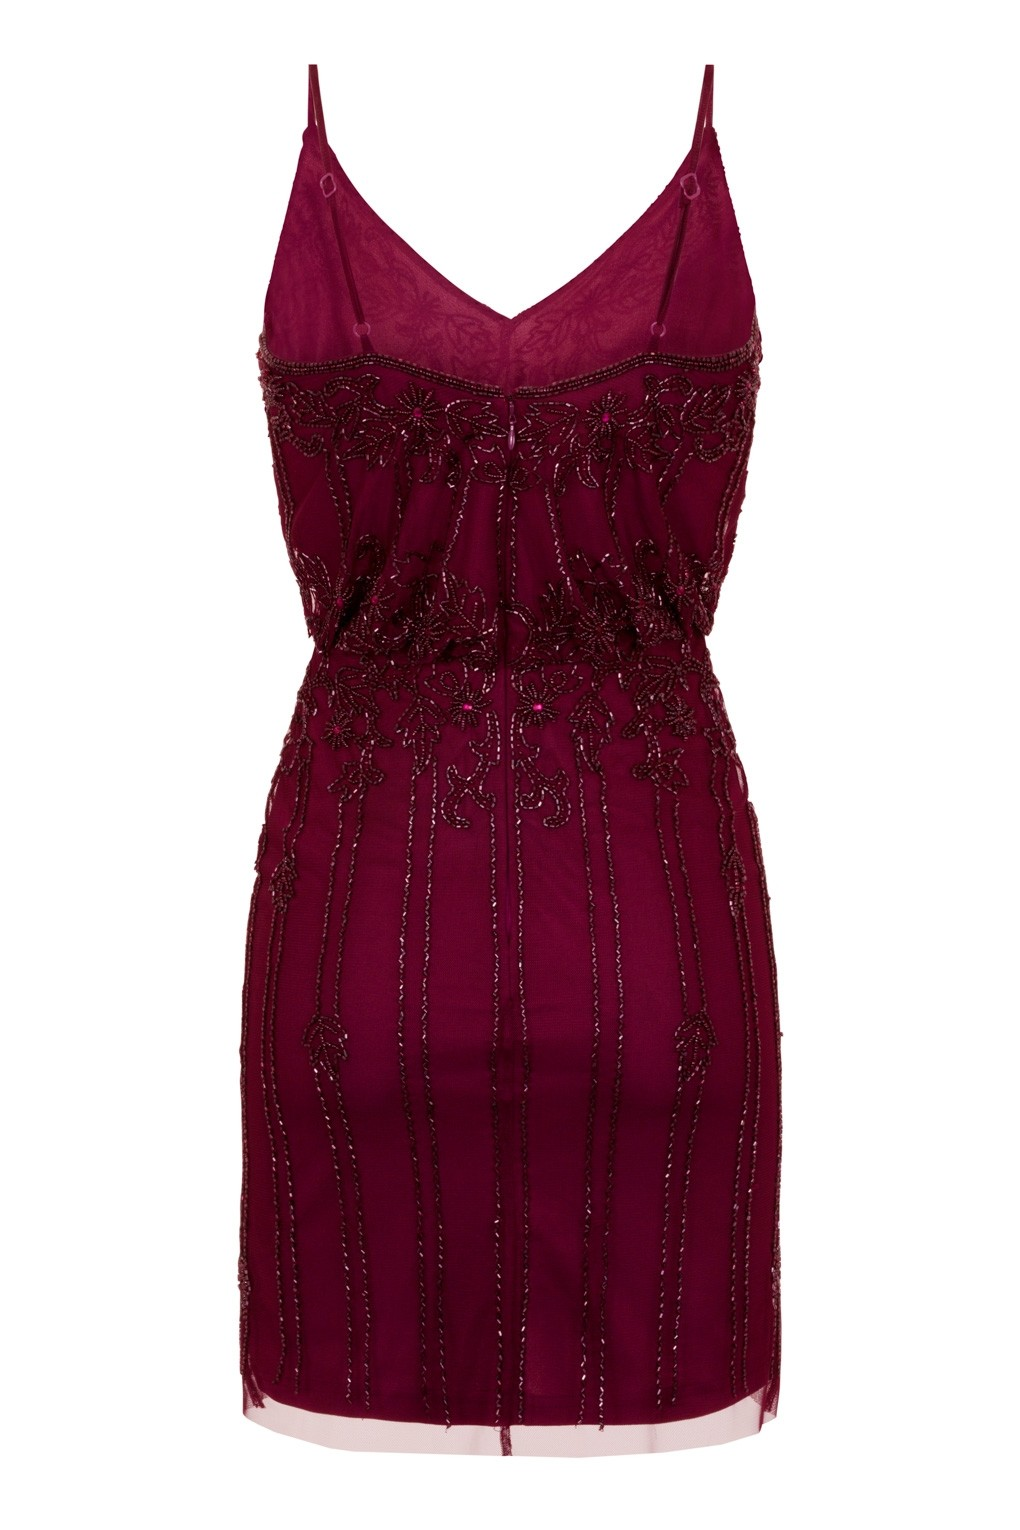 Lace Amp Beads Keeva Burgundy Mini Dress Lace Amp Beads Party Dress